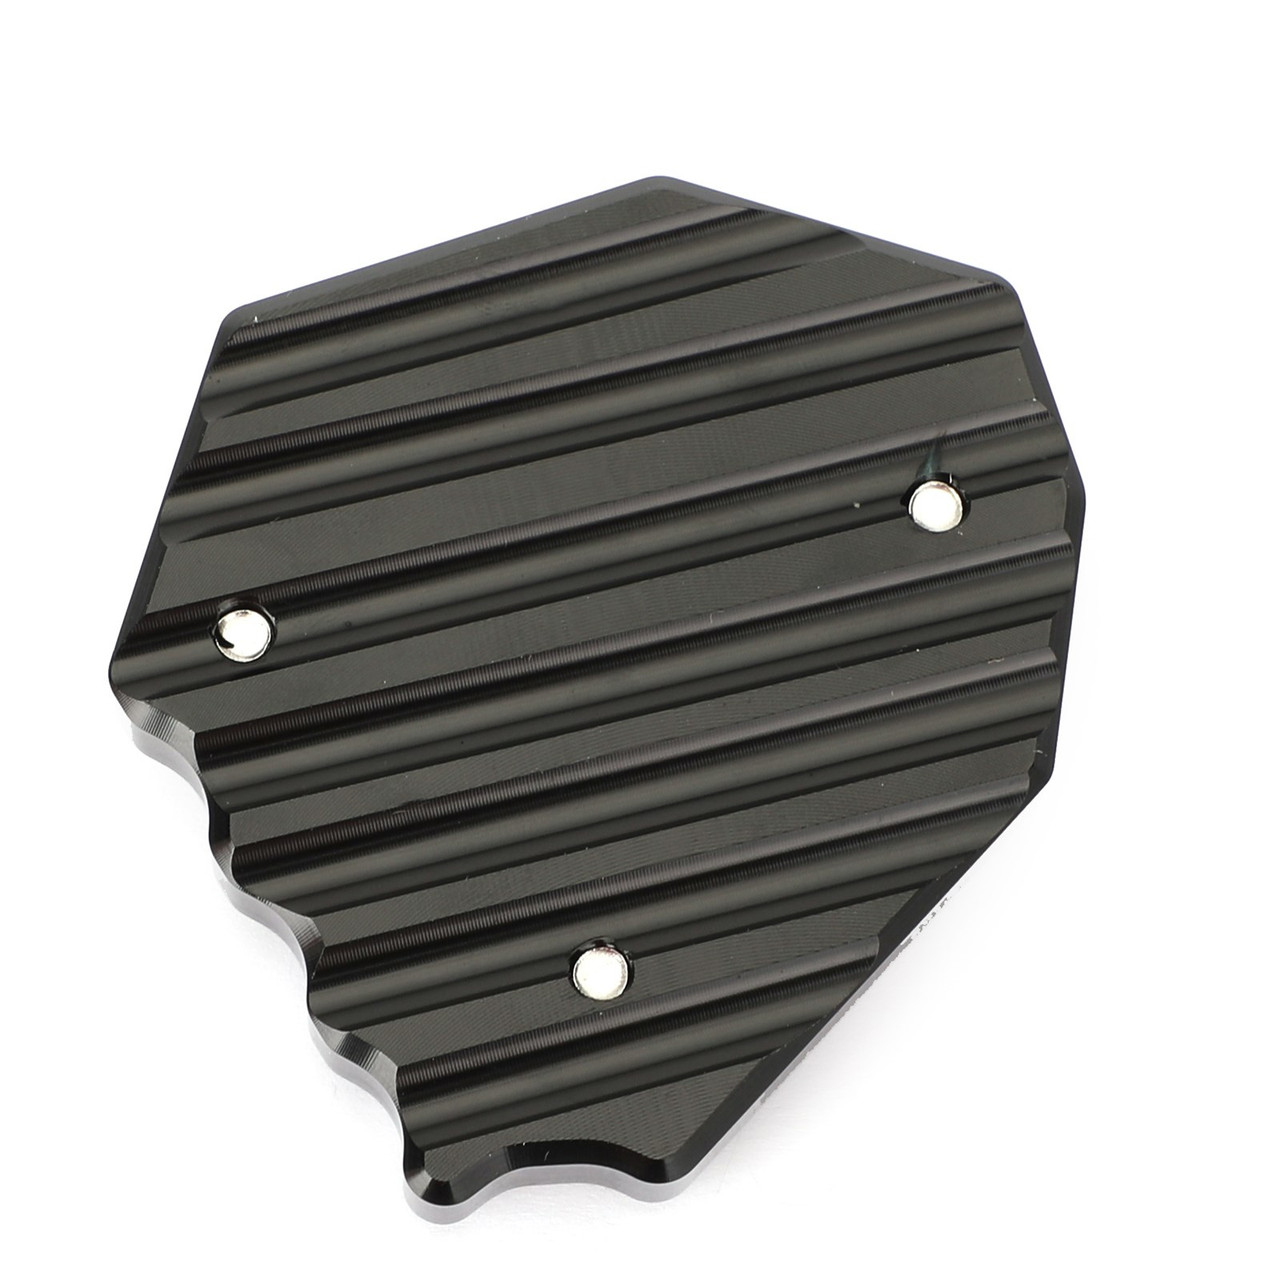 CNC Kickstand Sidestand Stand extension enlarger pad For BMW S1000XR 2015-2017 Black